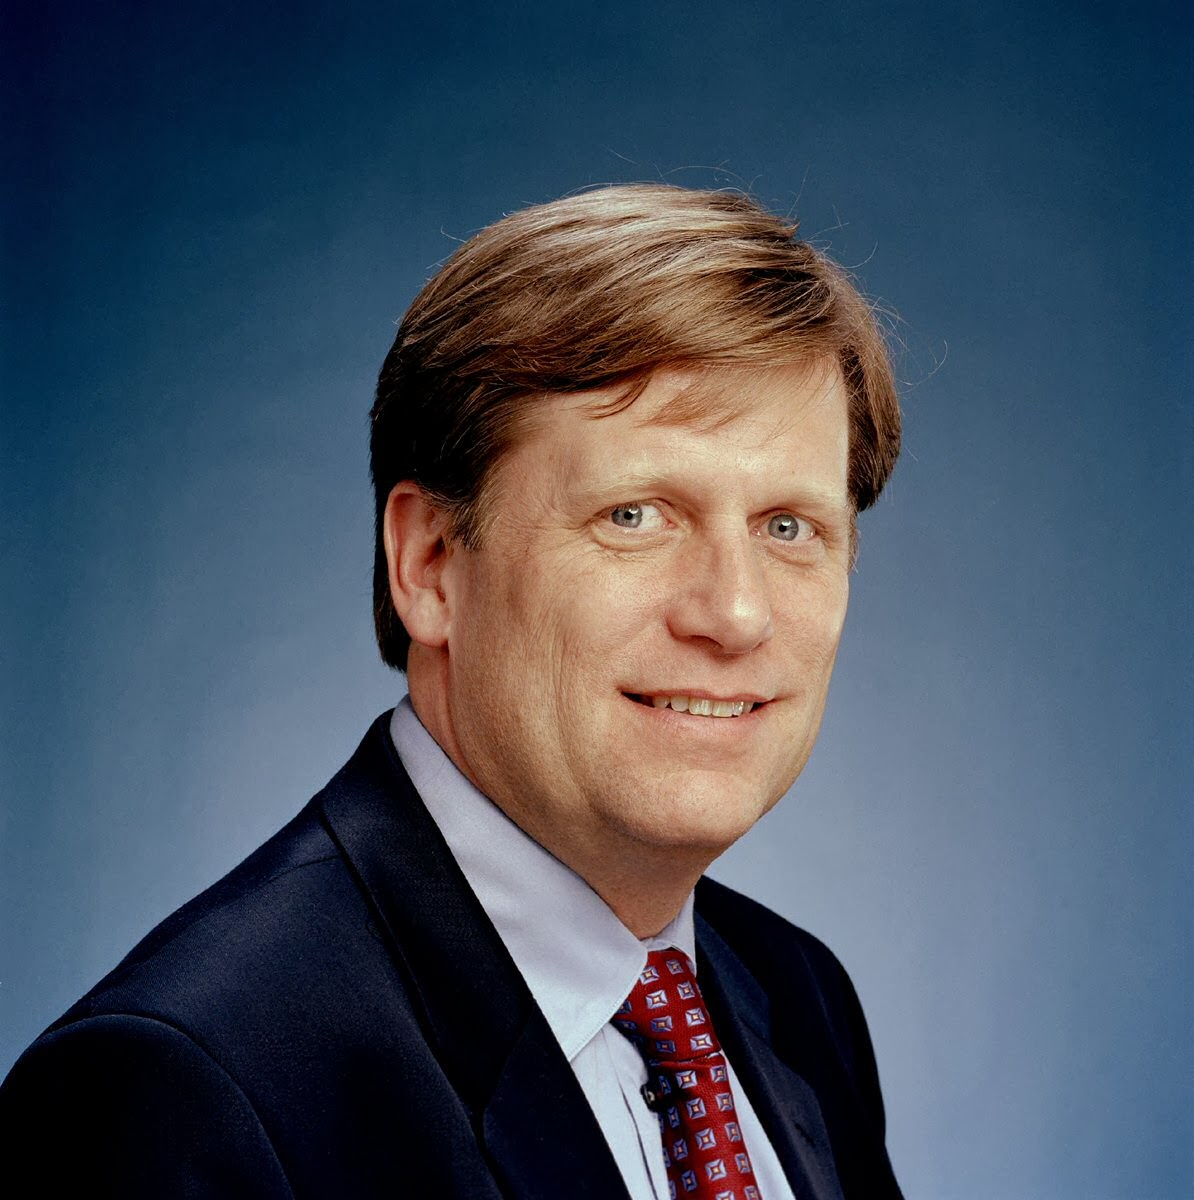 Michael Mcfaul, the U.S. Ambassador to Russia